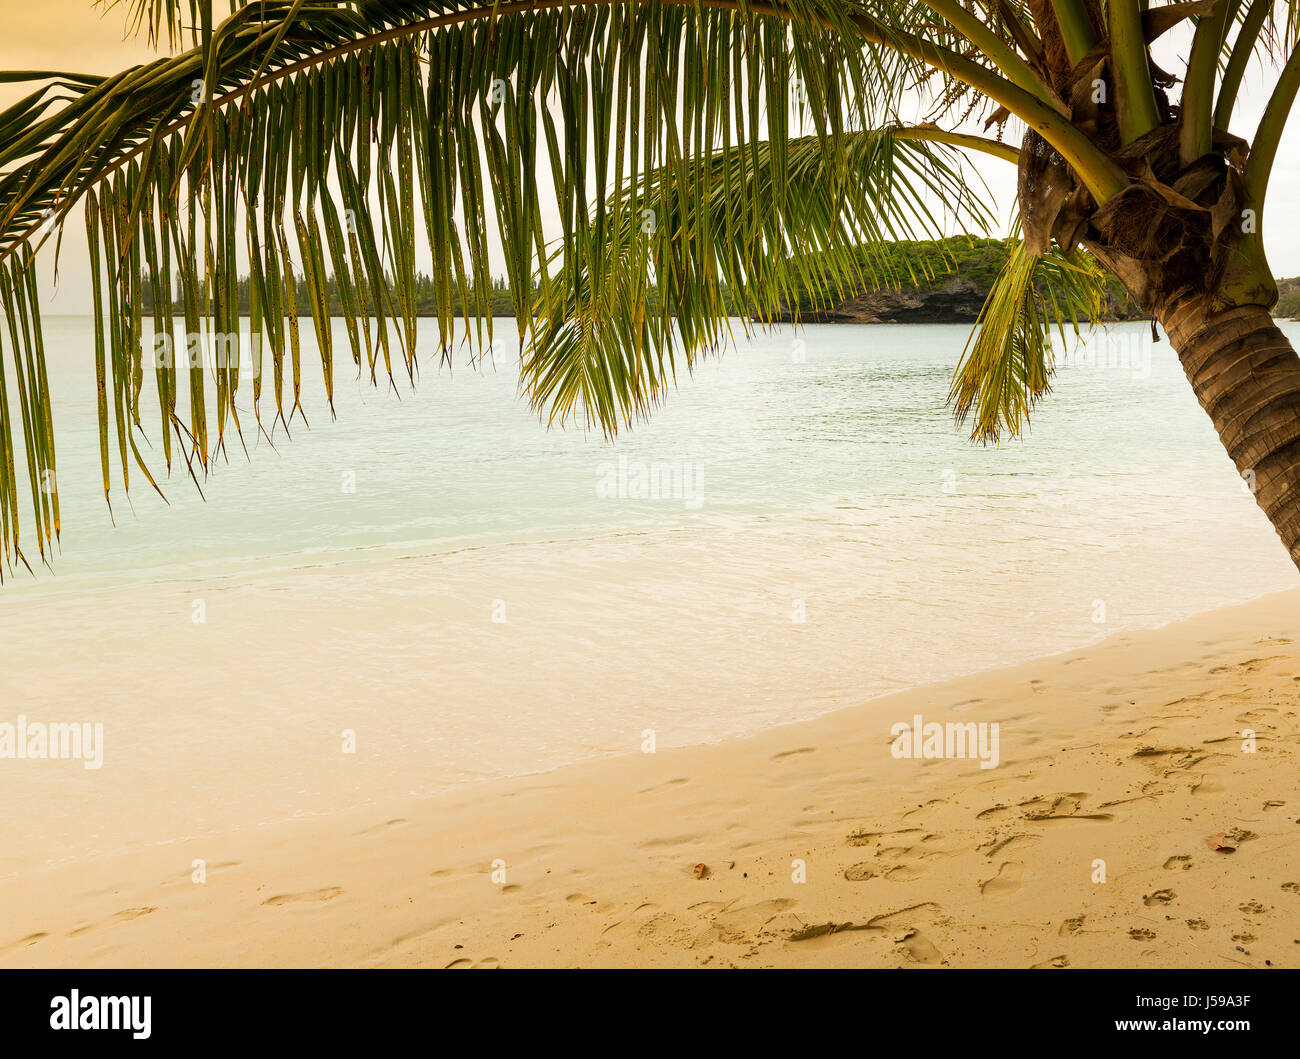 Tropical beach scene with palm tree, sandy beach and clear water - Stock Image